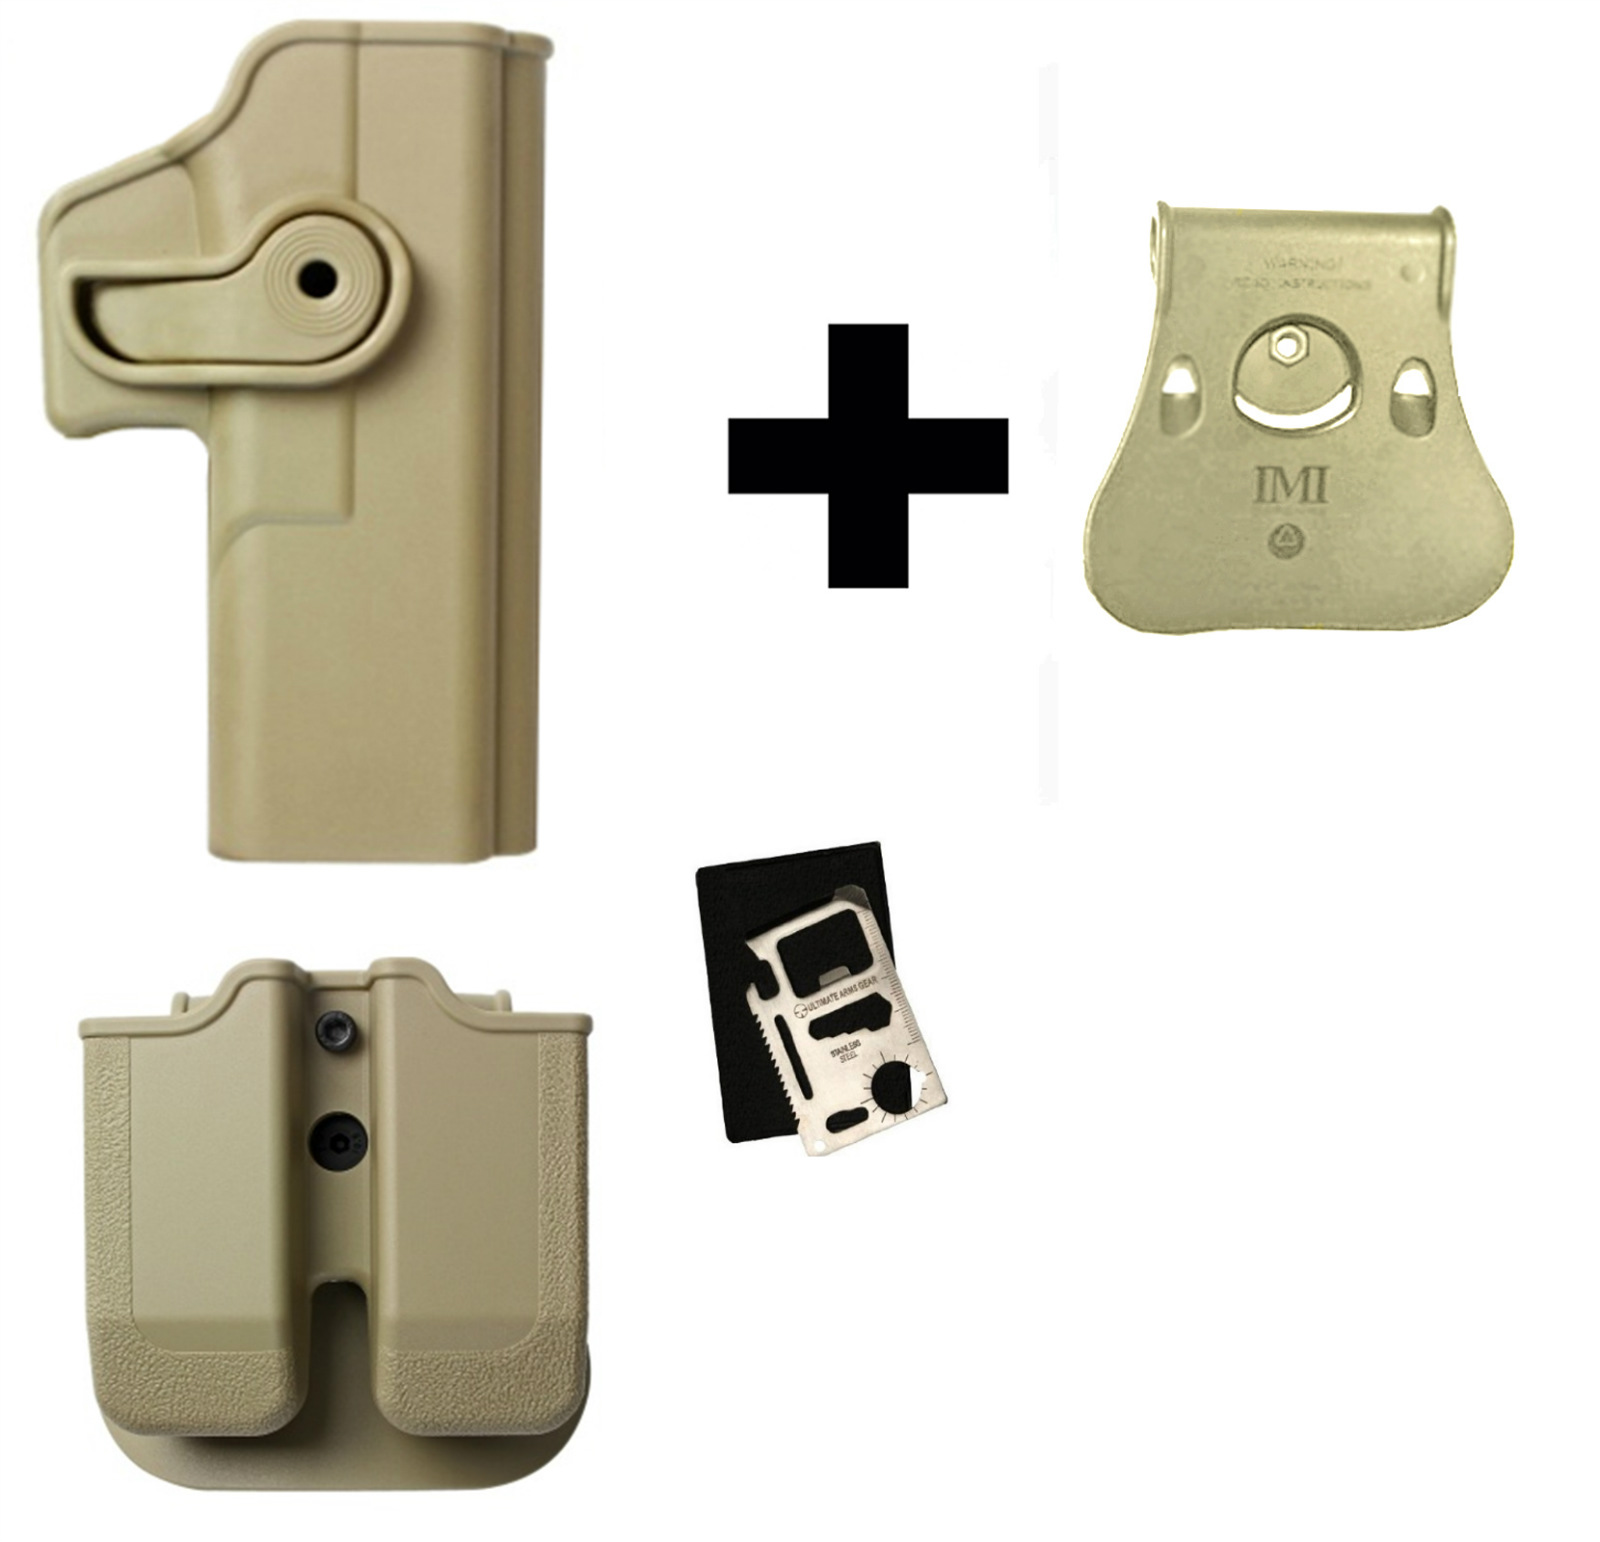 IMI Defense Z2020 MP02 Double Mag Holder & Paddle + Z1050 Polymer 360� Rotate Holster Glock 20 21 28 30 37 38 Right... by